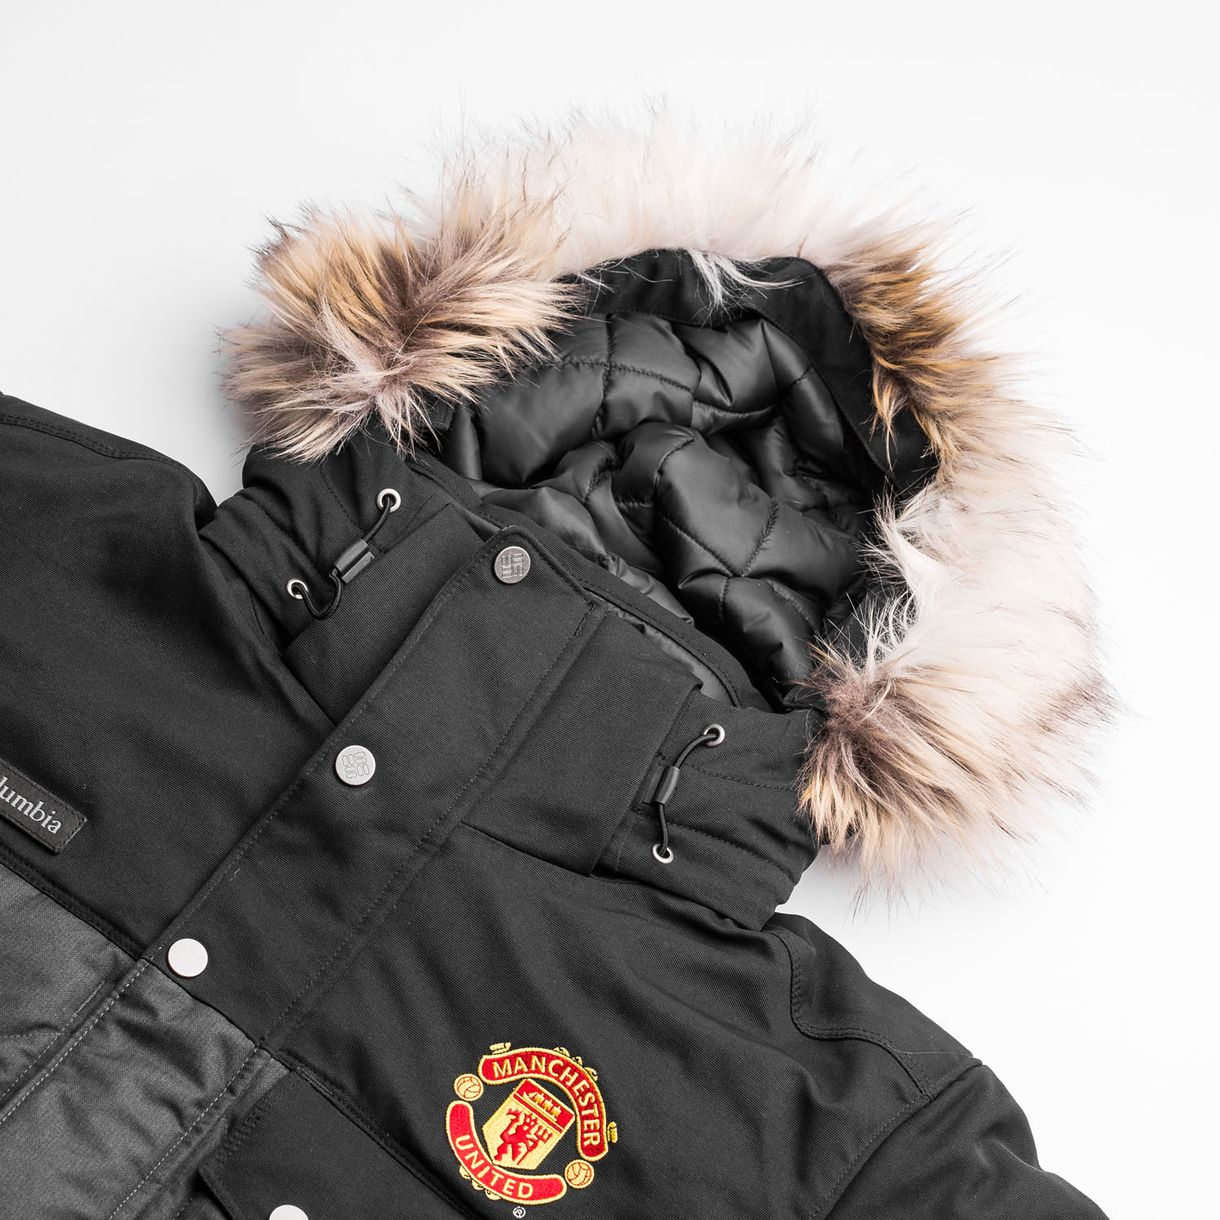 ... Click to enlarge image  manchester united x columbia jacket barlow pass 550 turbodown quilted black b.jpg  ... 4d6fbf784b